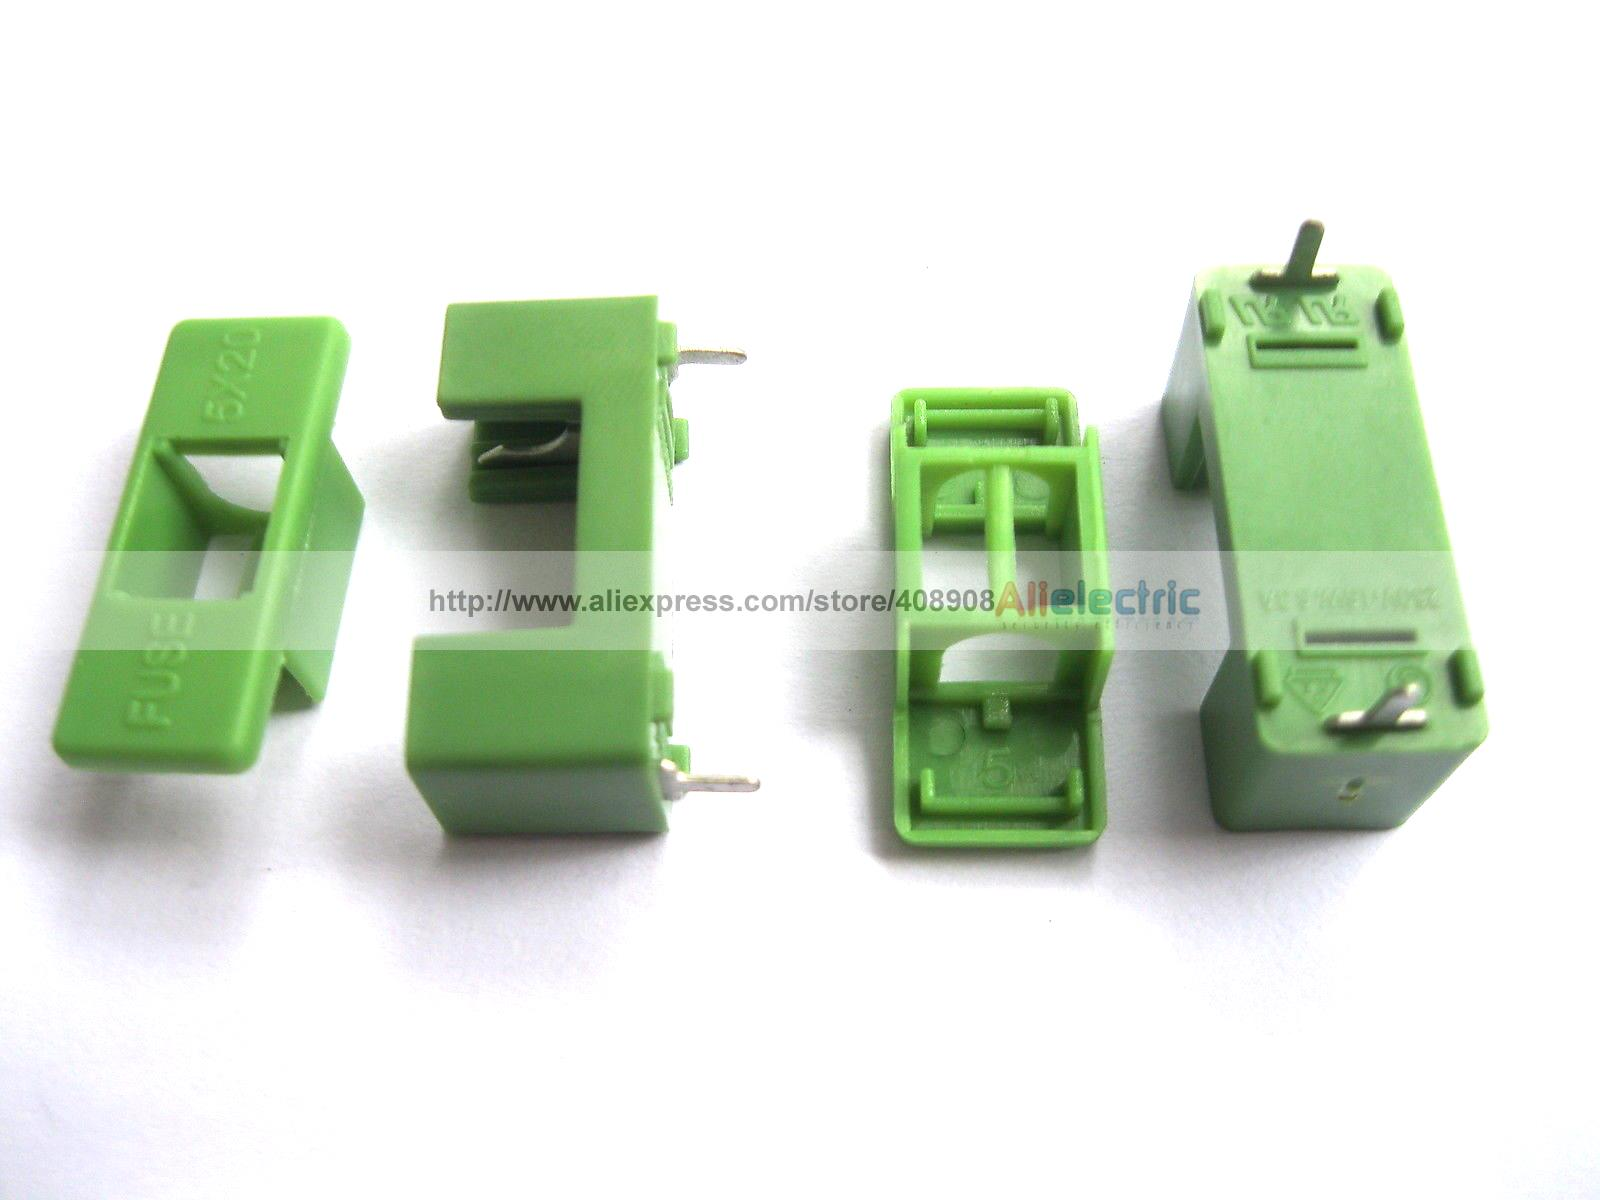 100 Pcs PTF 7 DIP Fuse Holder 6 3A 250V Used for 5x20 Green Color george orwell diaries page 2